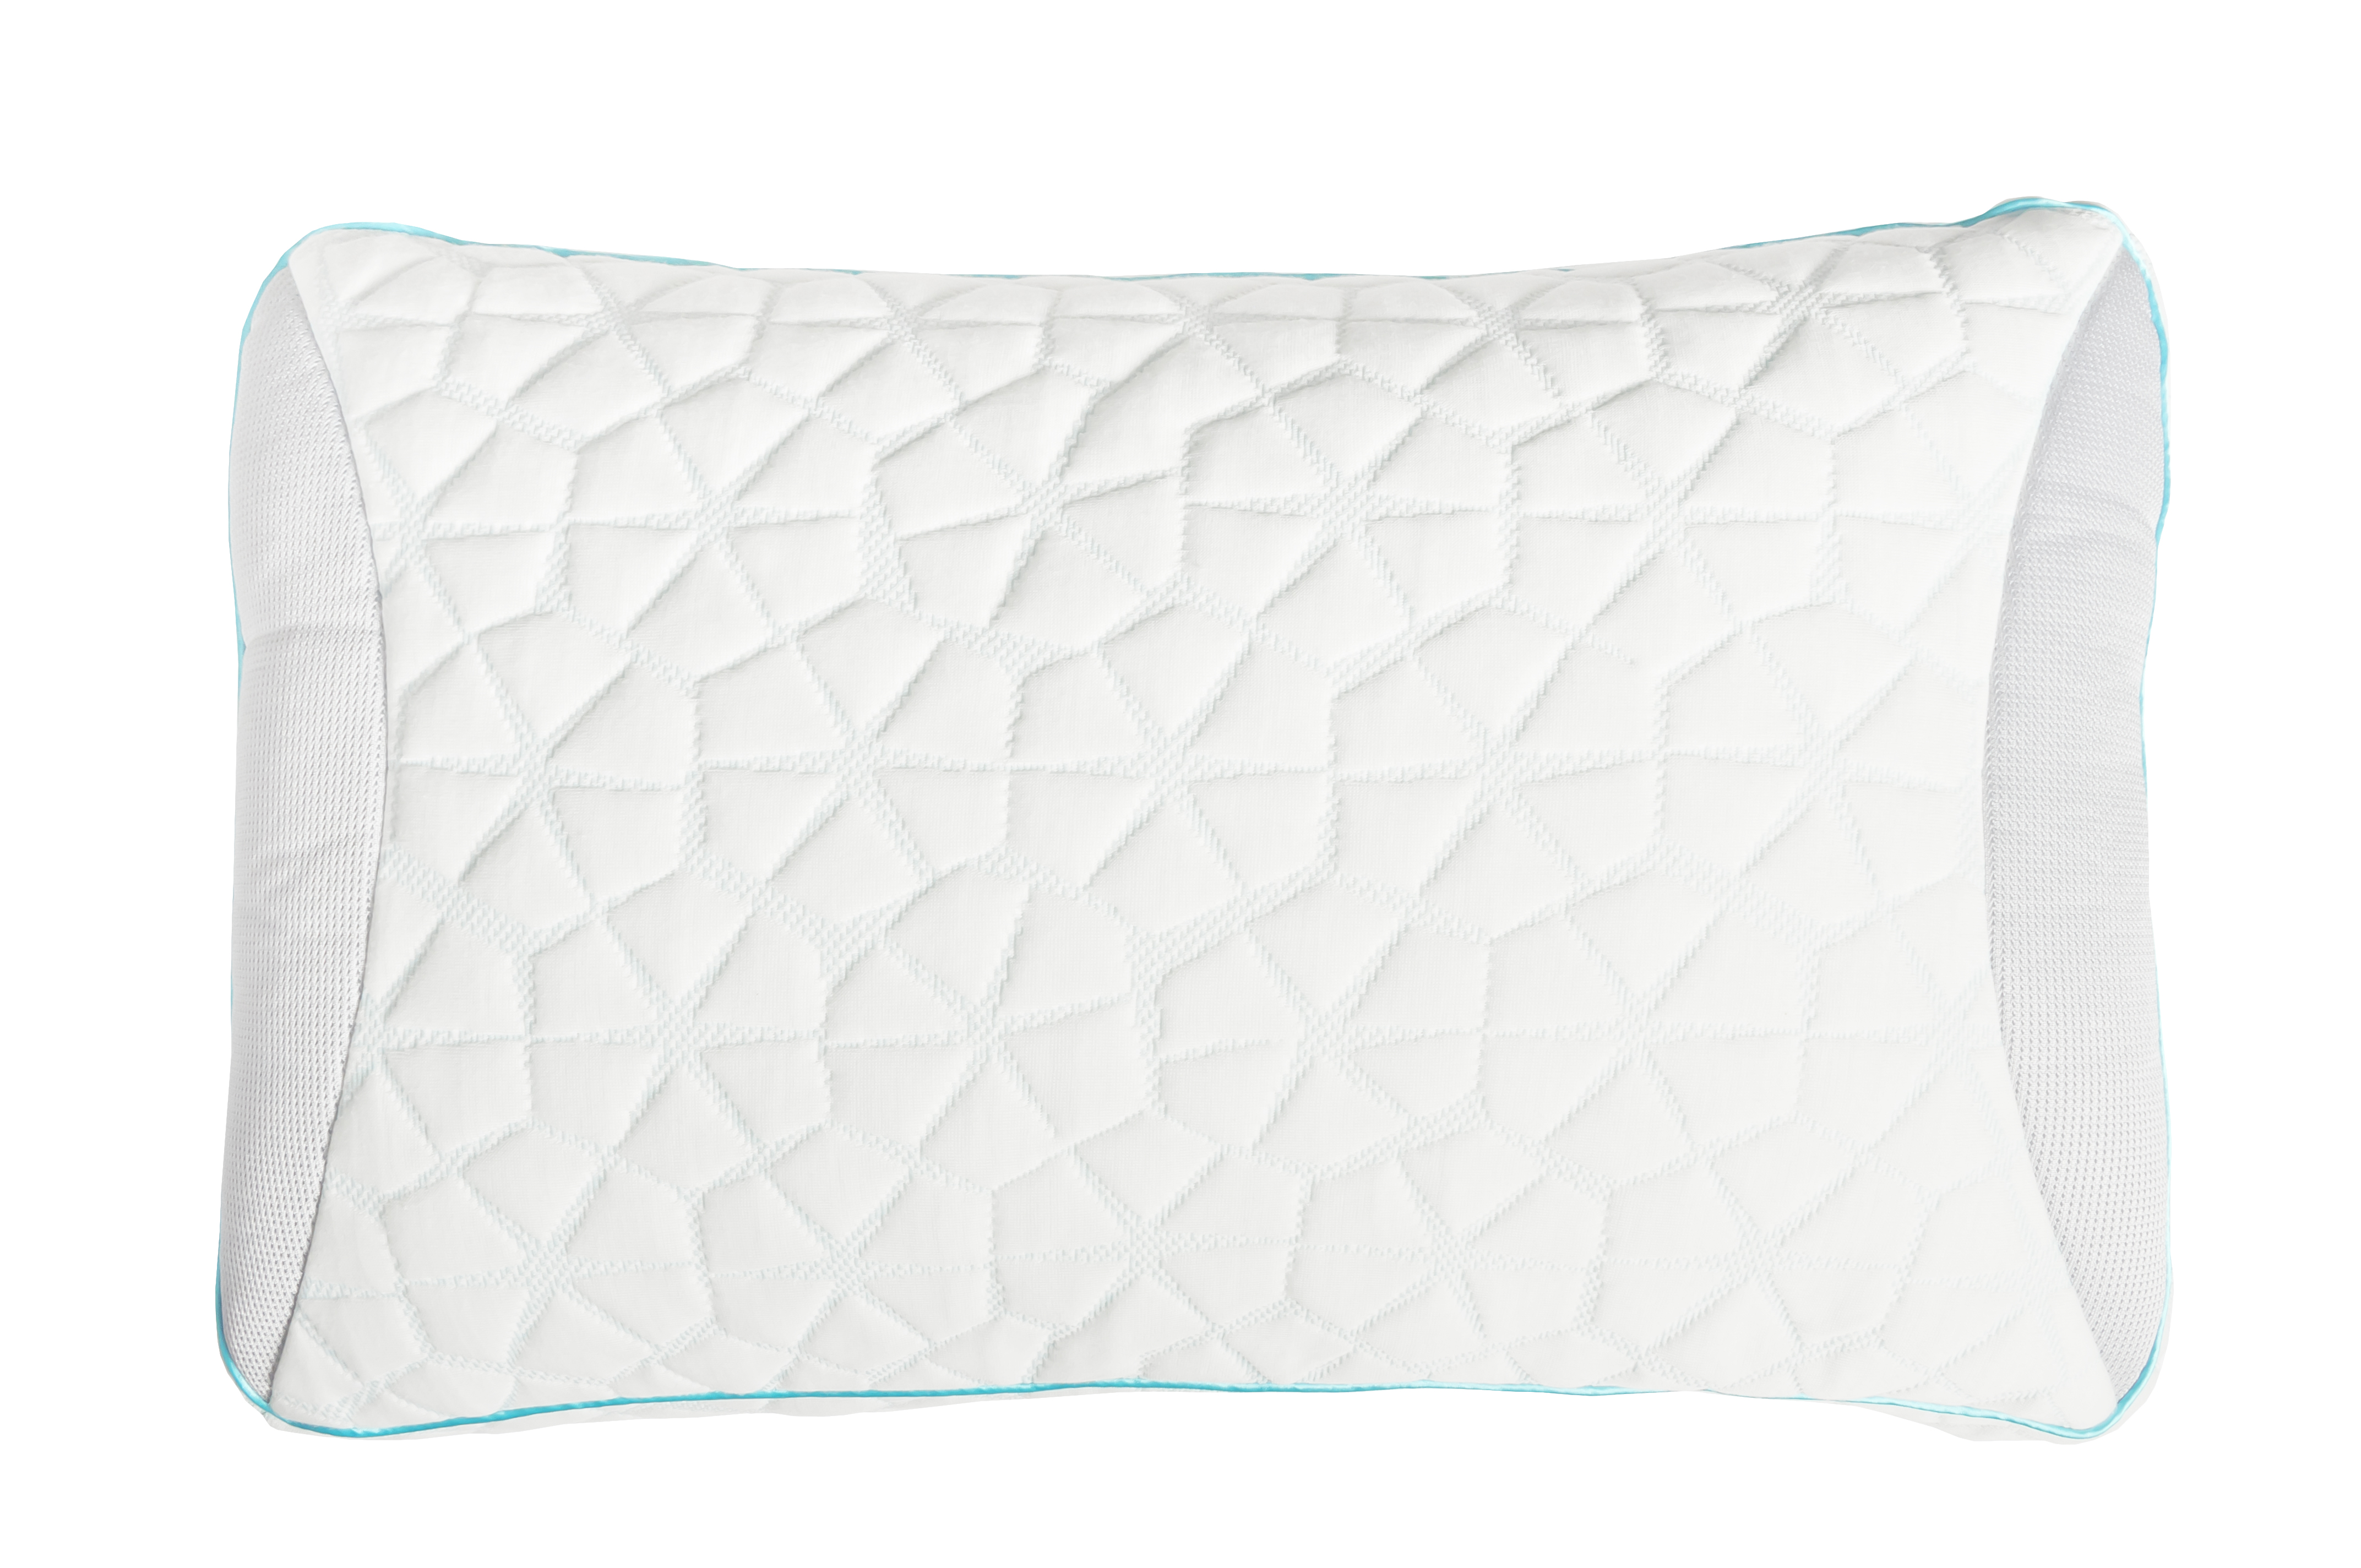 memory gel foam relaxation therapedic with total pillows pillow cooling